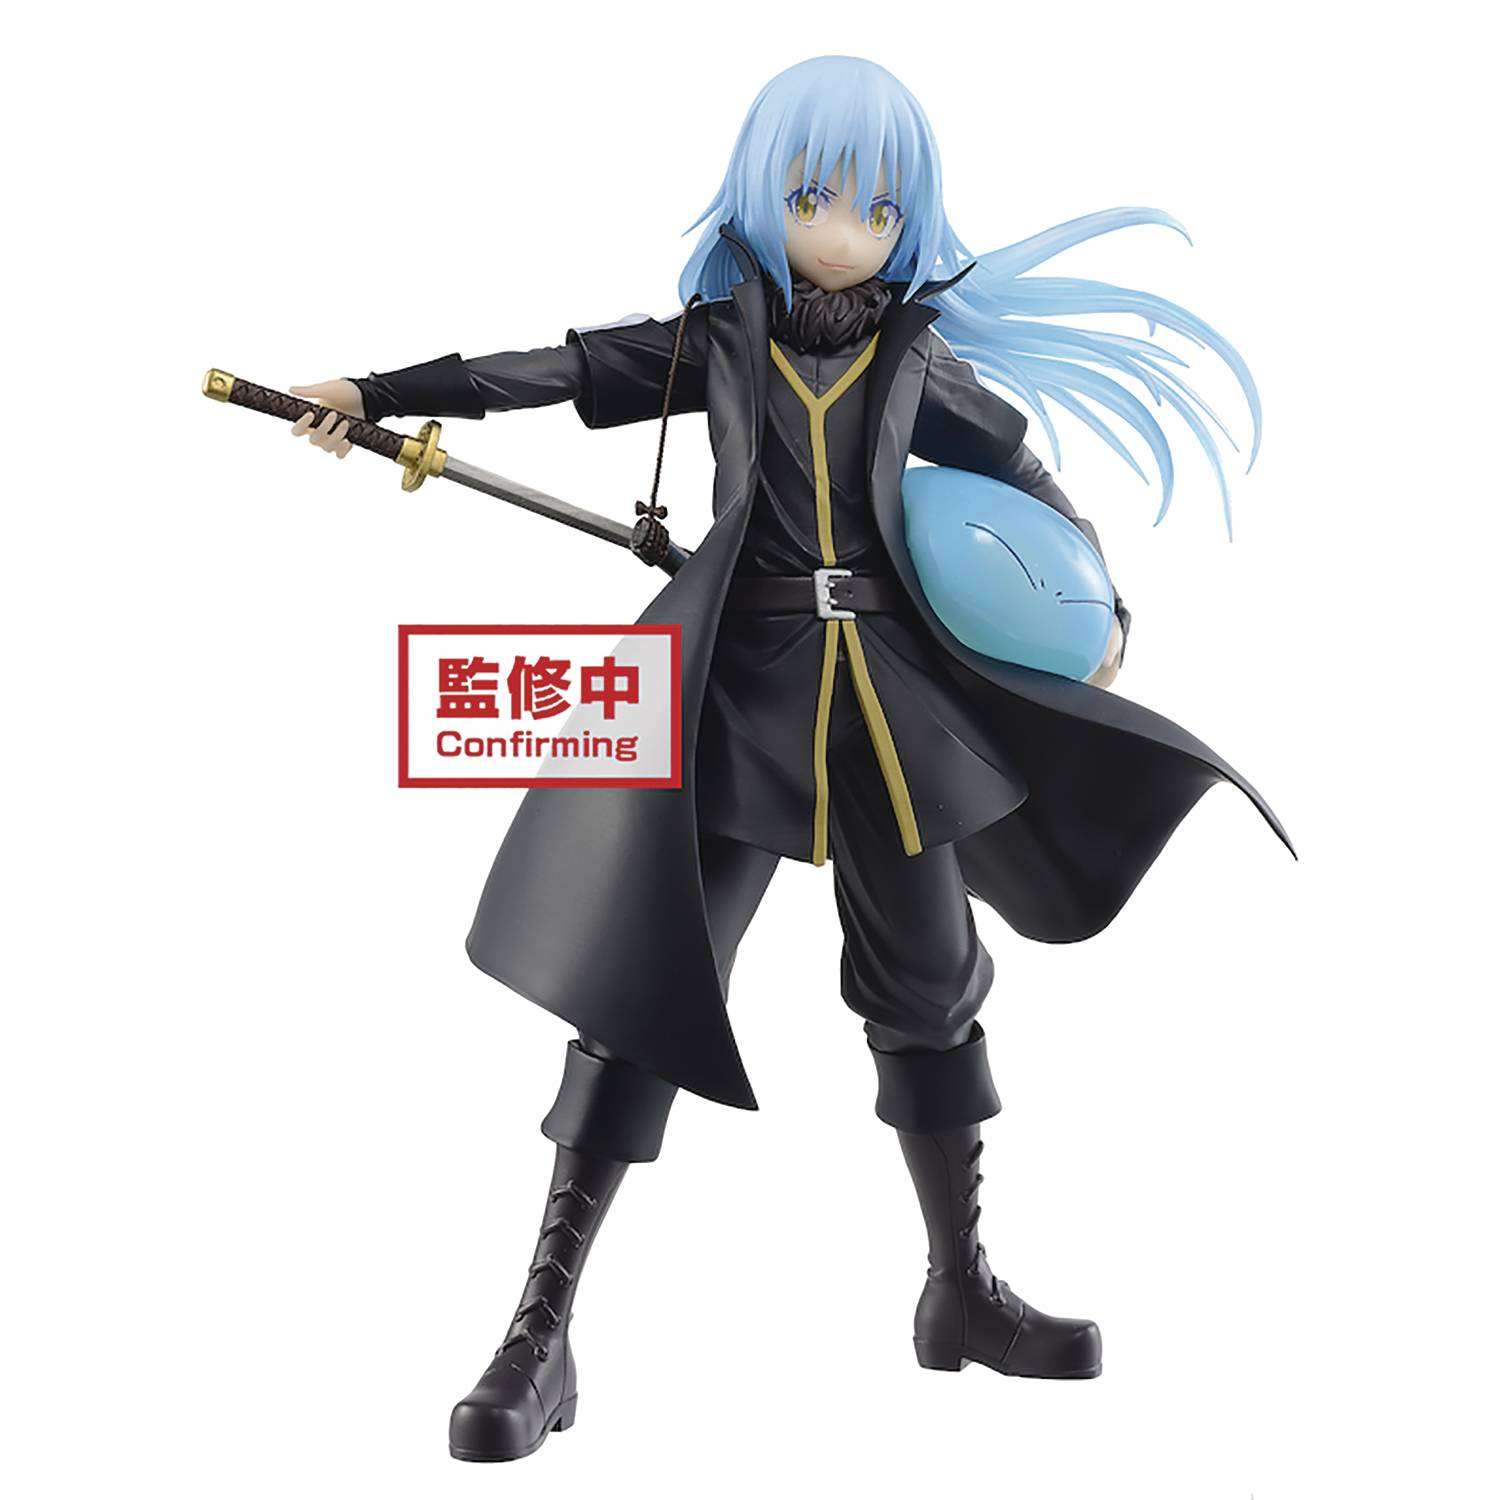 THAT TIME I GOT REINCARNATED AS A SLIME -  FIGURE 8 1/4 INCH -  DEMON RIMURU TEMPES